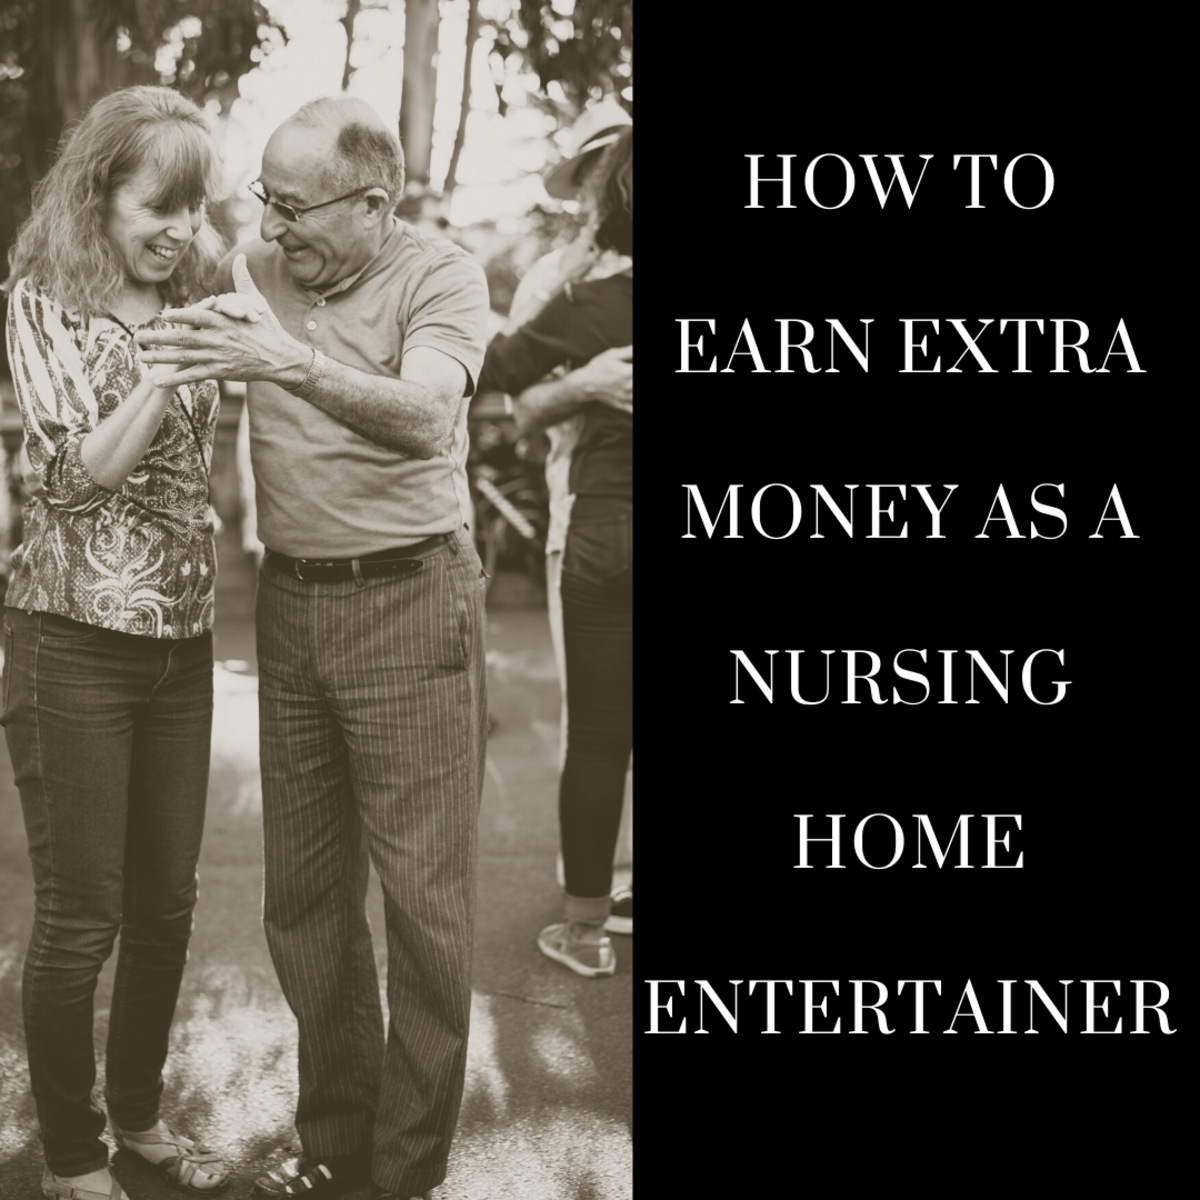 How to Earn Extra Money as a Nursing Home Entertainment Provider